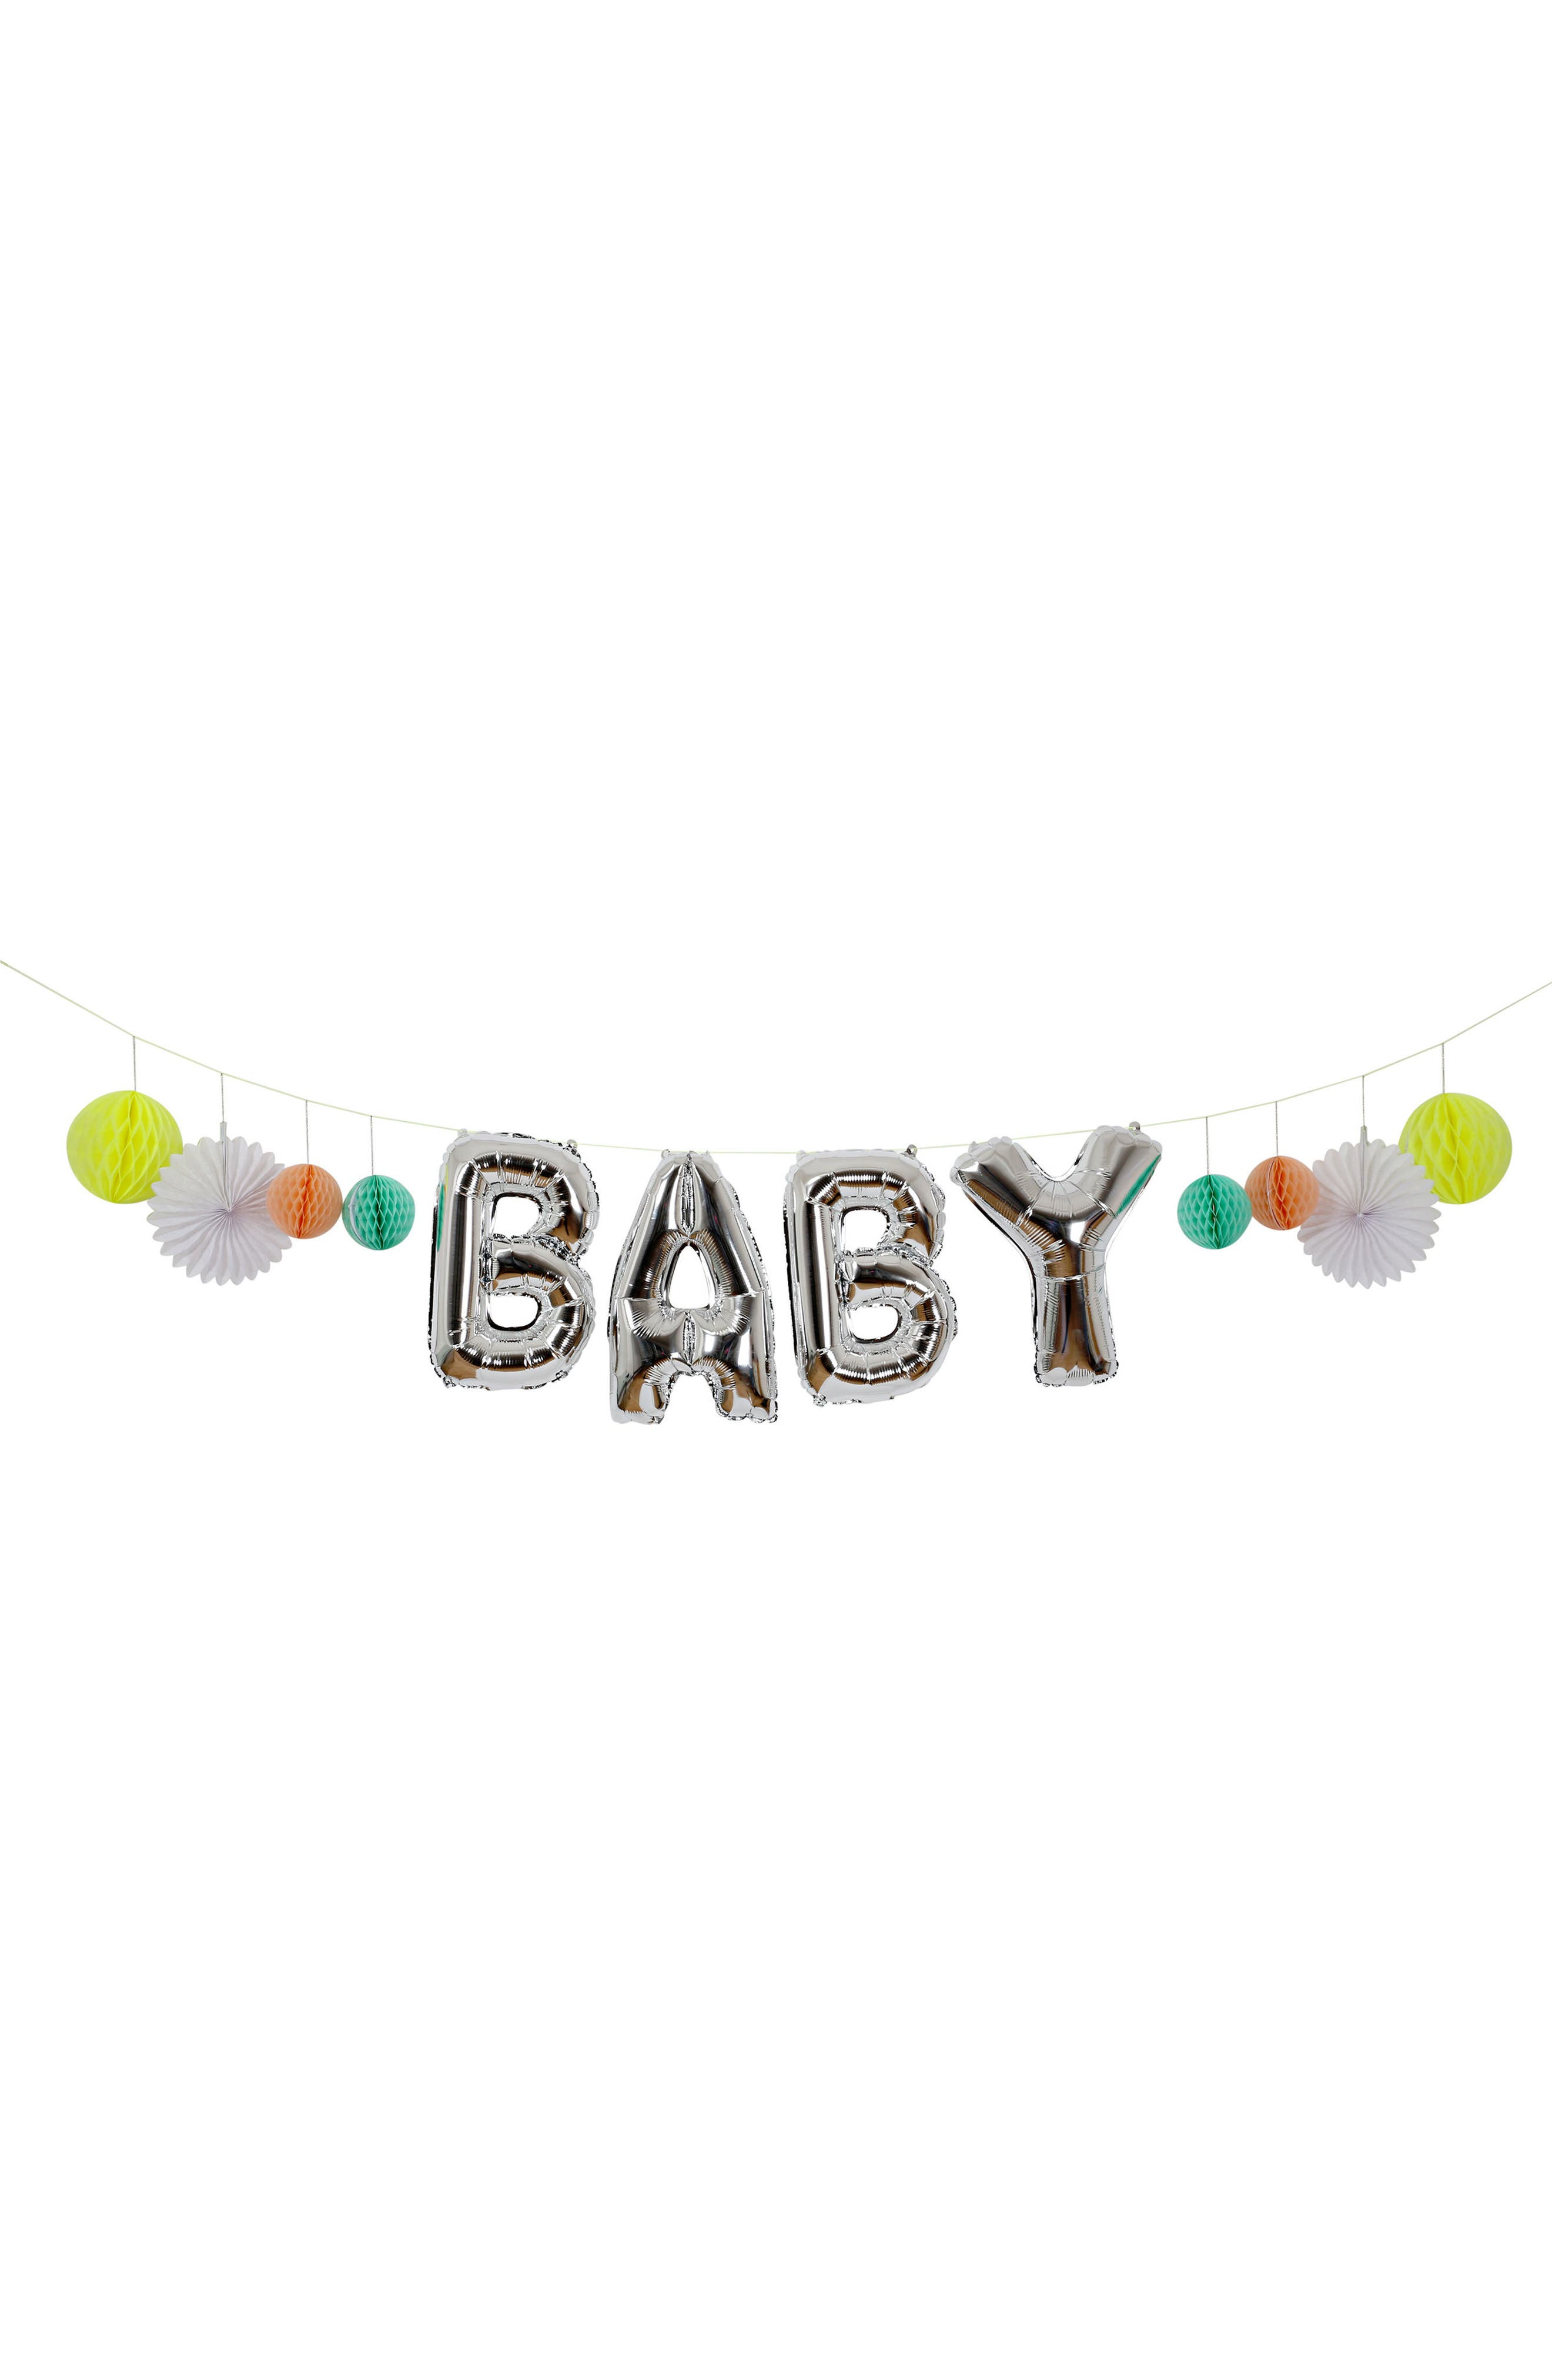 Baby Shower Party Kit,                             Alternate thumbnail 12, color,                             Green